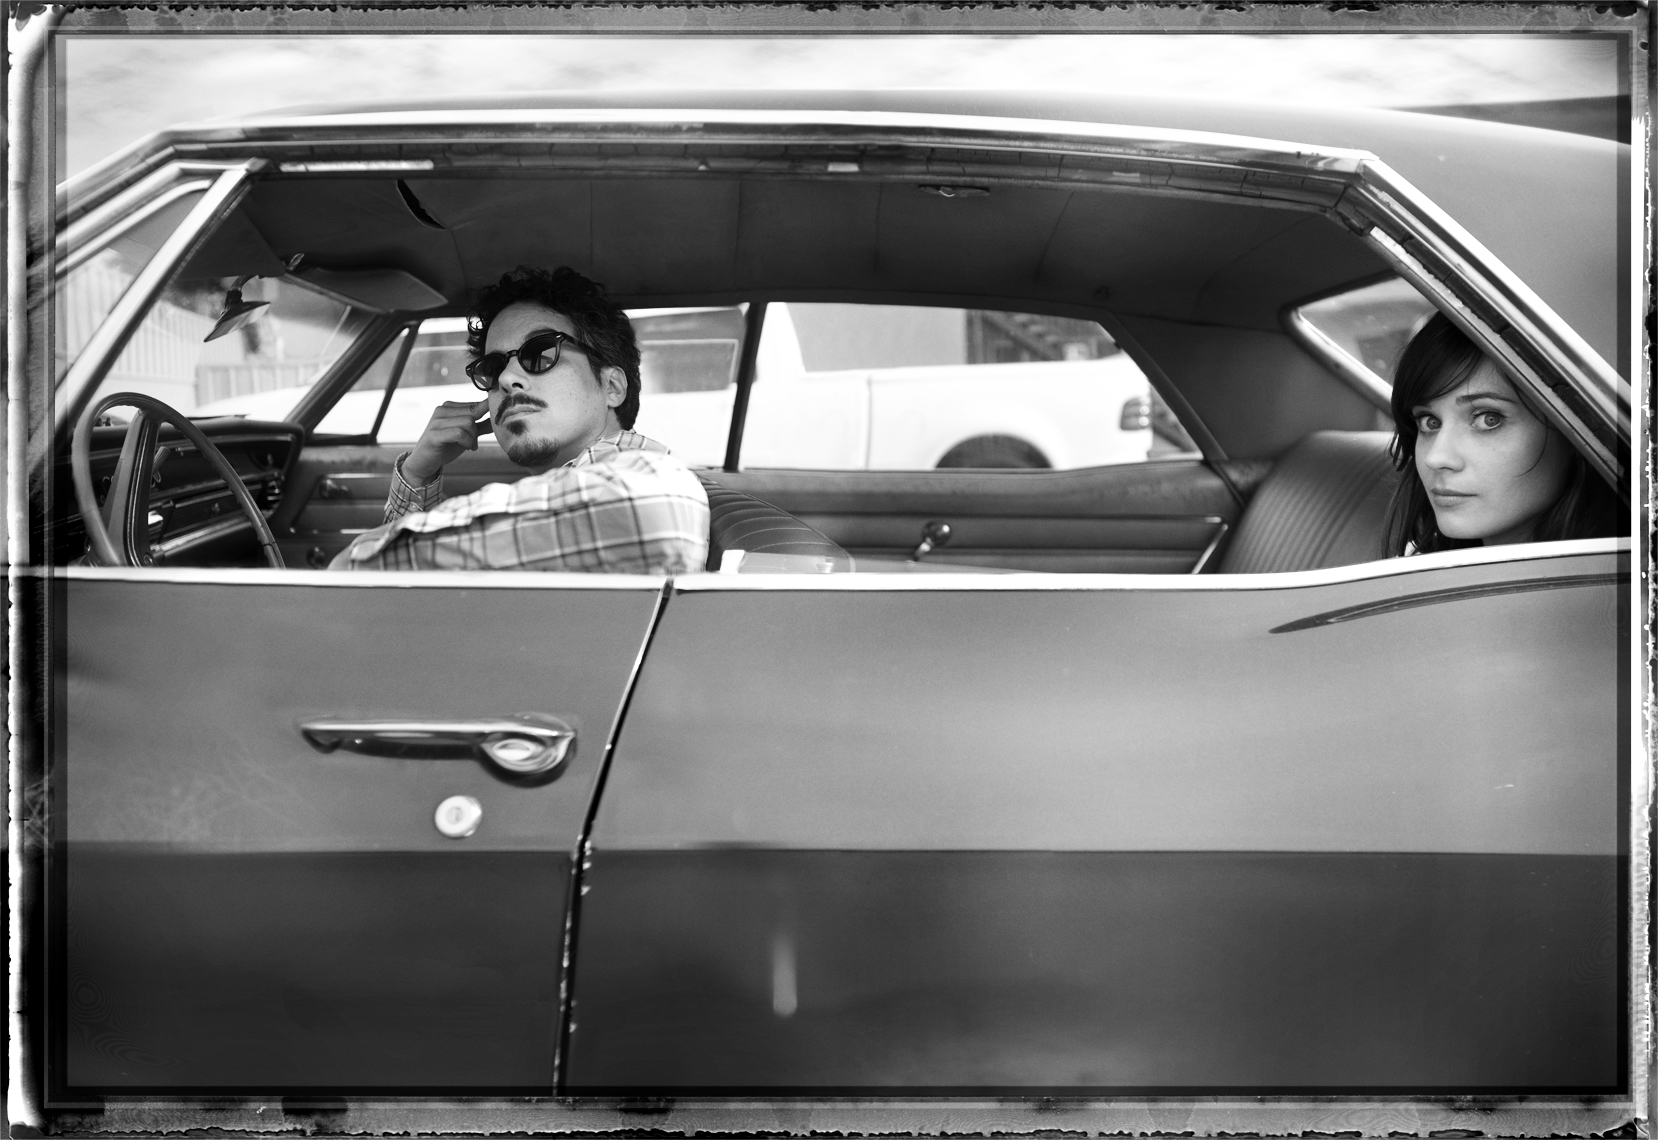 wShe_and_Him_Car_BW